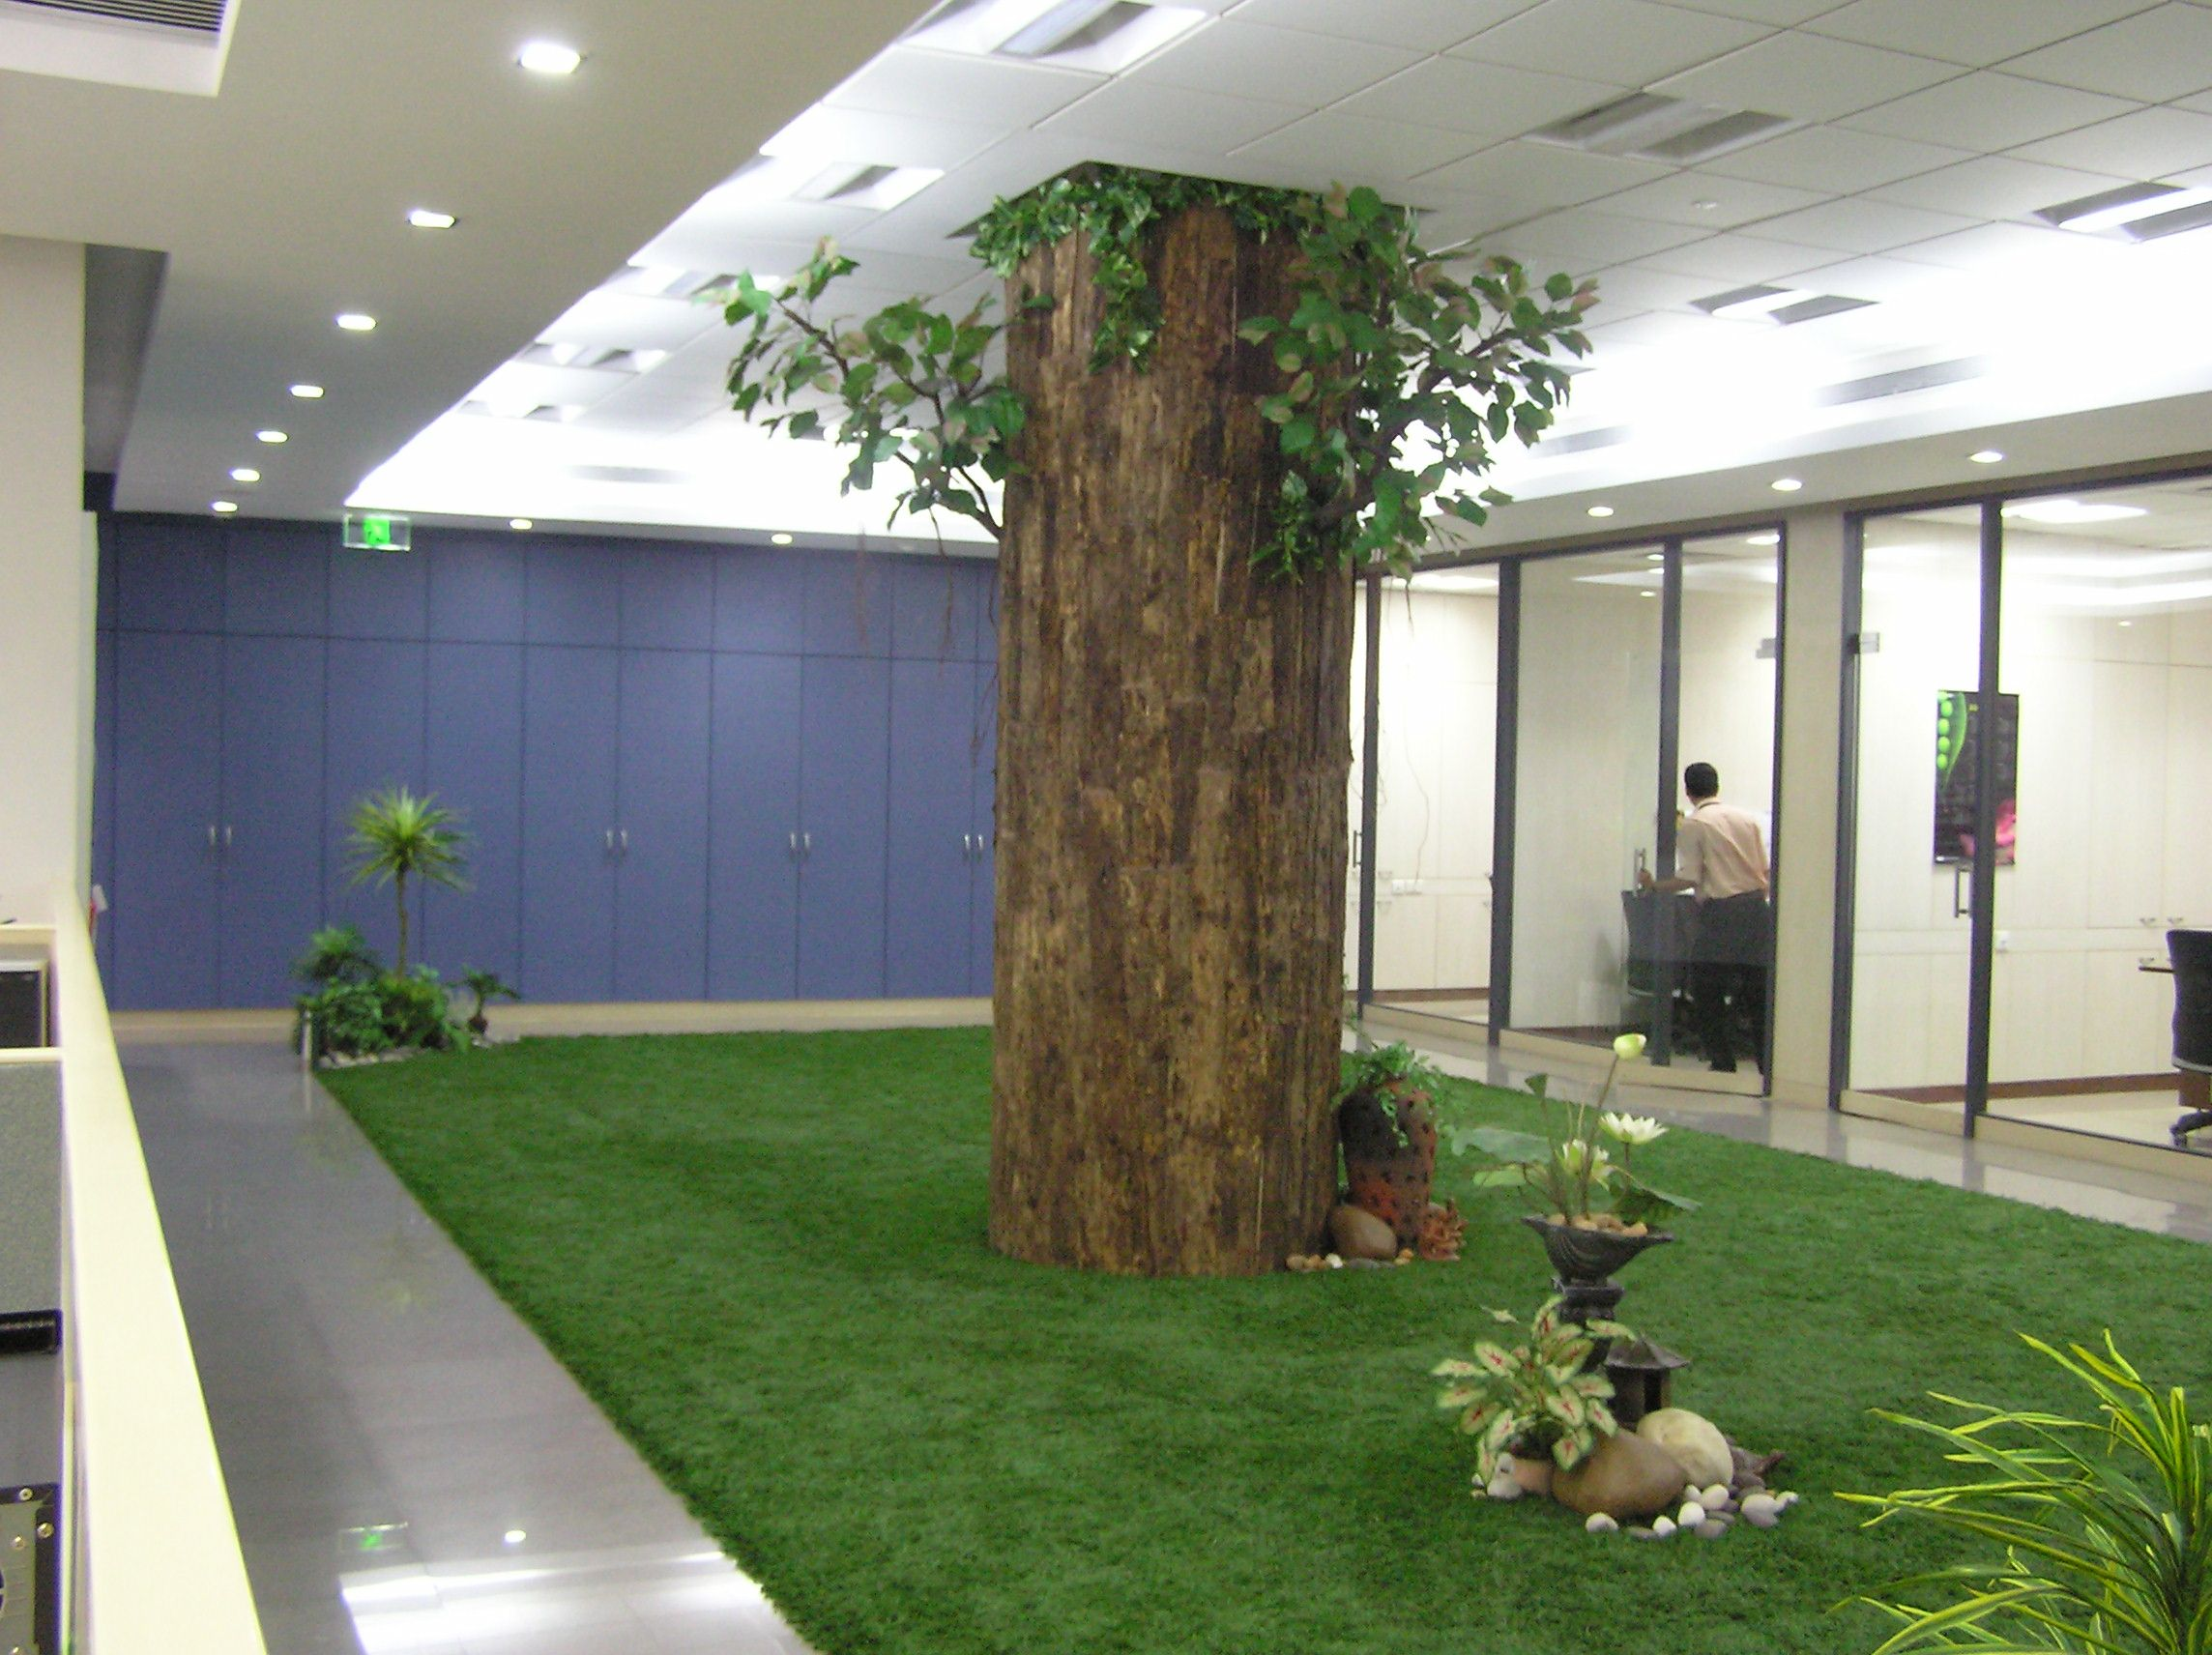 Jardin interior con cesped artificial cesped artificial for Jardin artificial interior